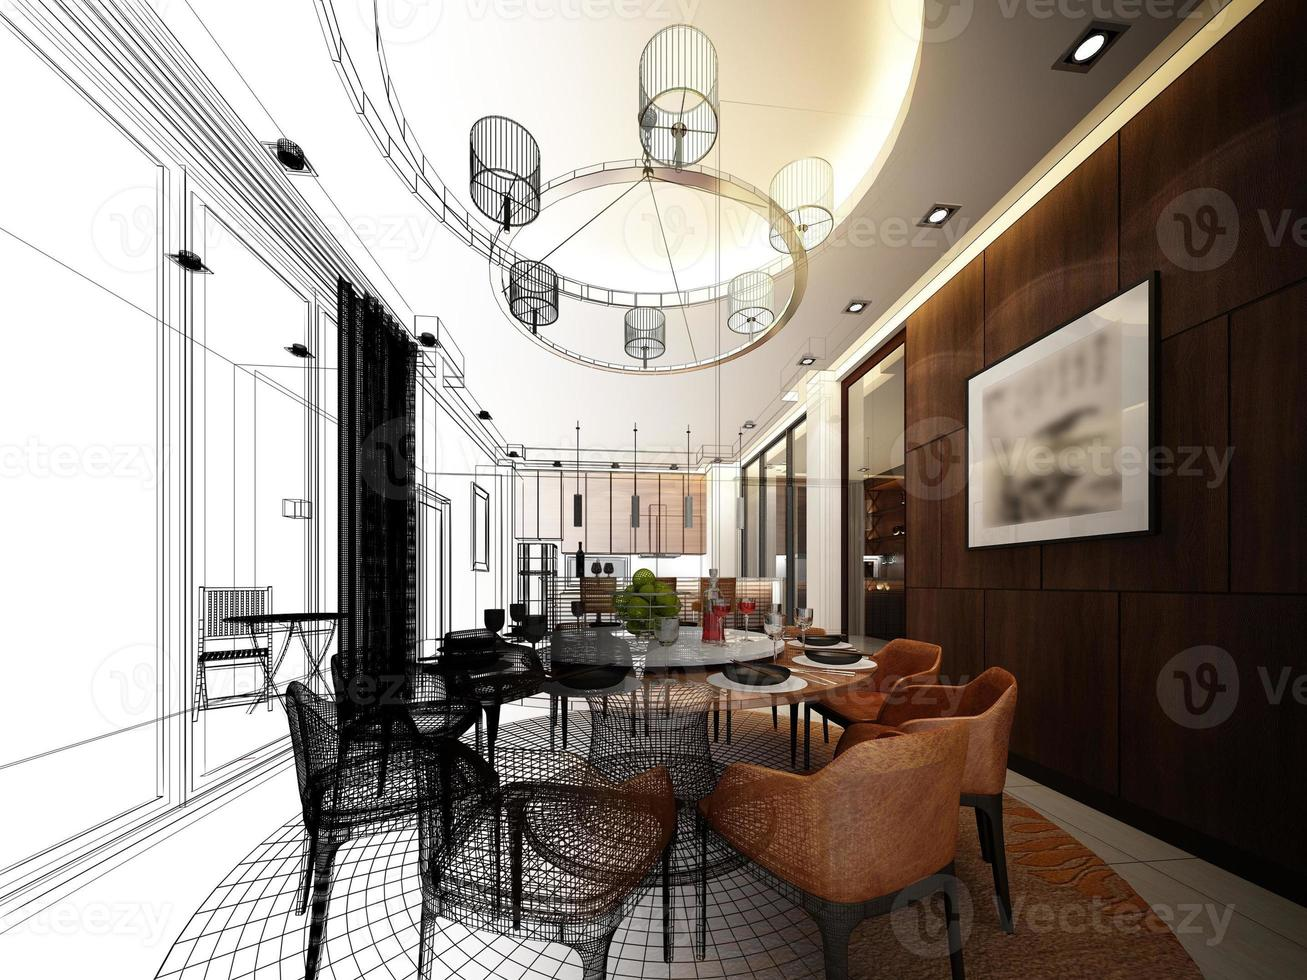 abstract sketch design of interior dining room photo